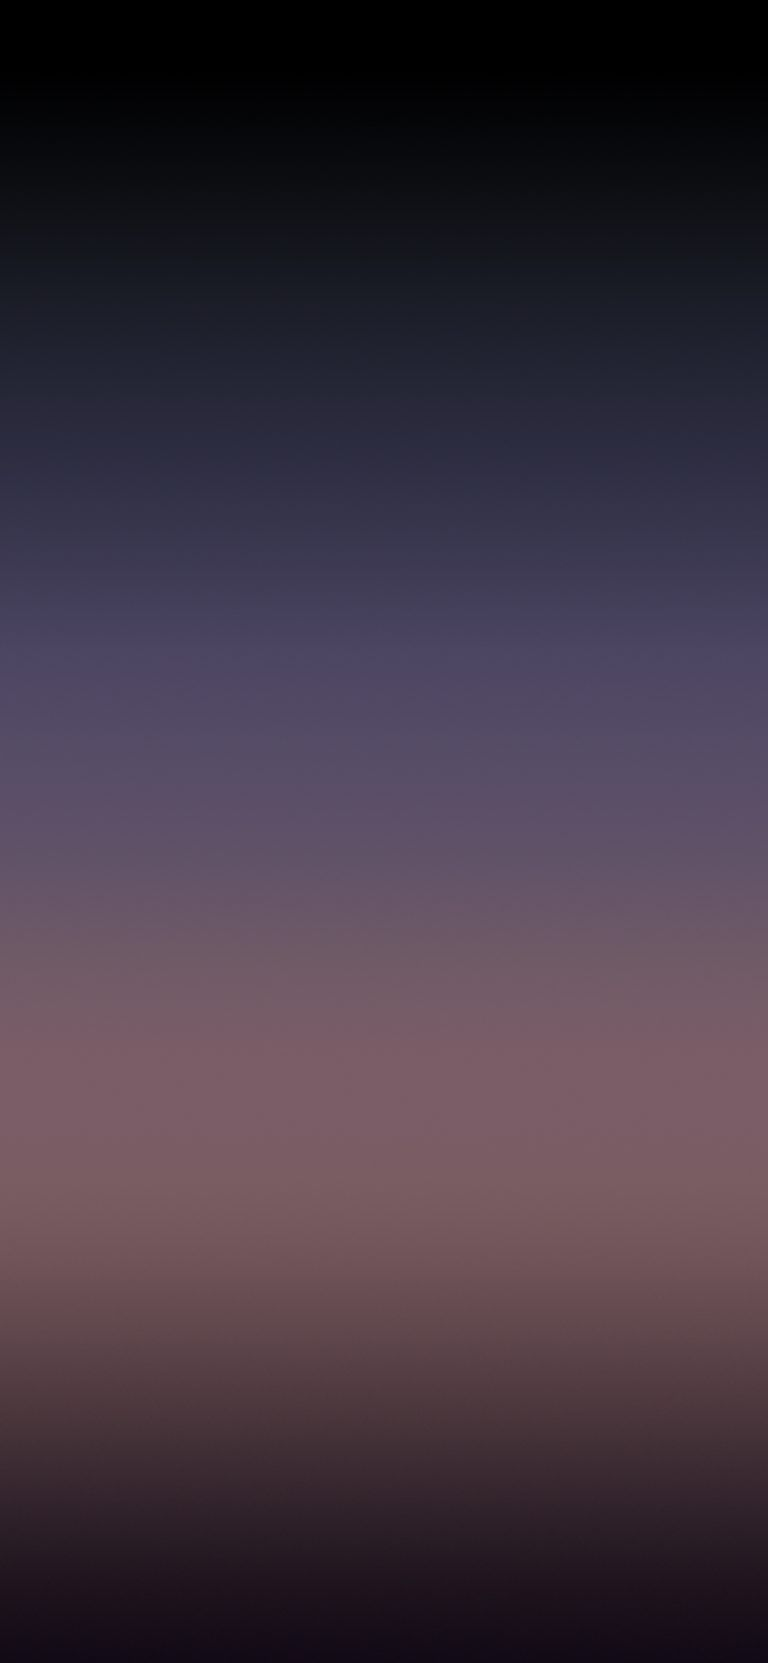 Minimal Gradient Wallpapers To Hide The Iphone X Notch Color Wallpaper Iphone Purple Ombre Wallpaper Ombre Wallpaper Iphone